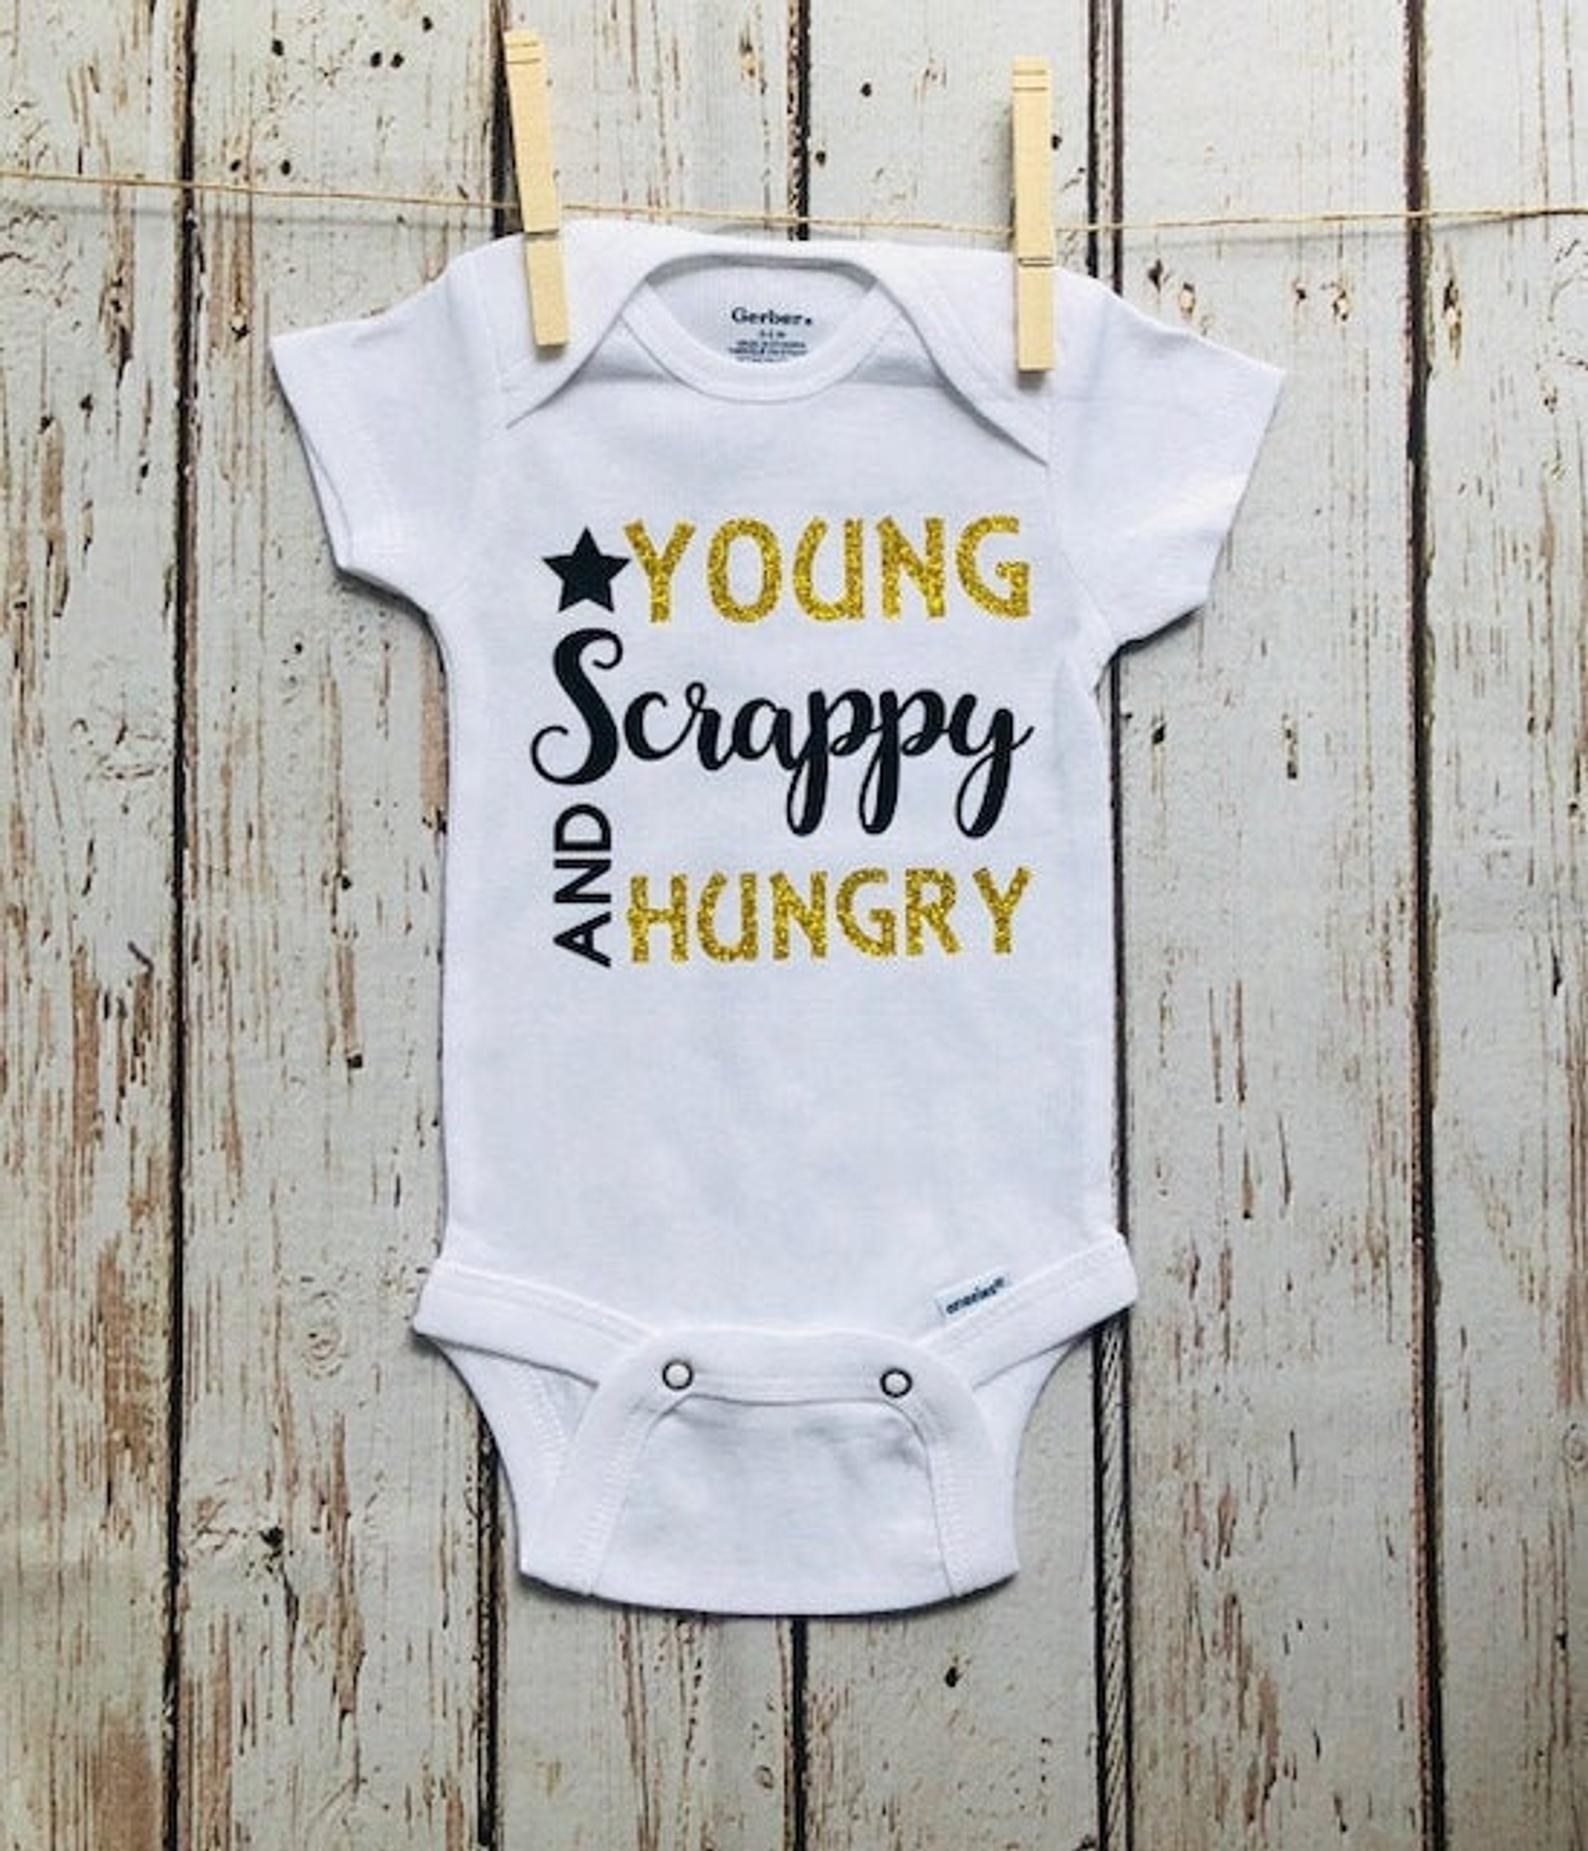 A white short-sleeved onesie with young scrappy and hungry written on it in black and gold